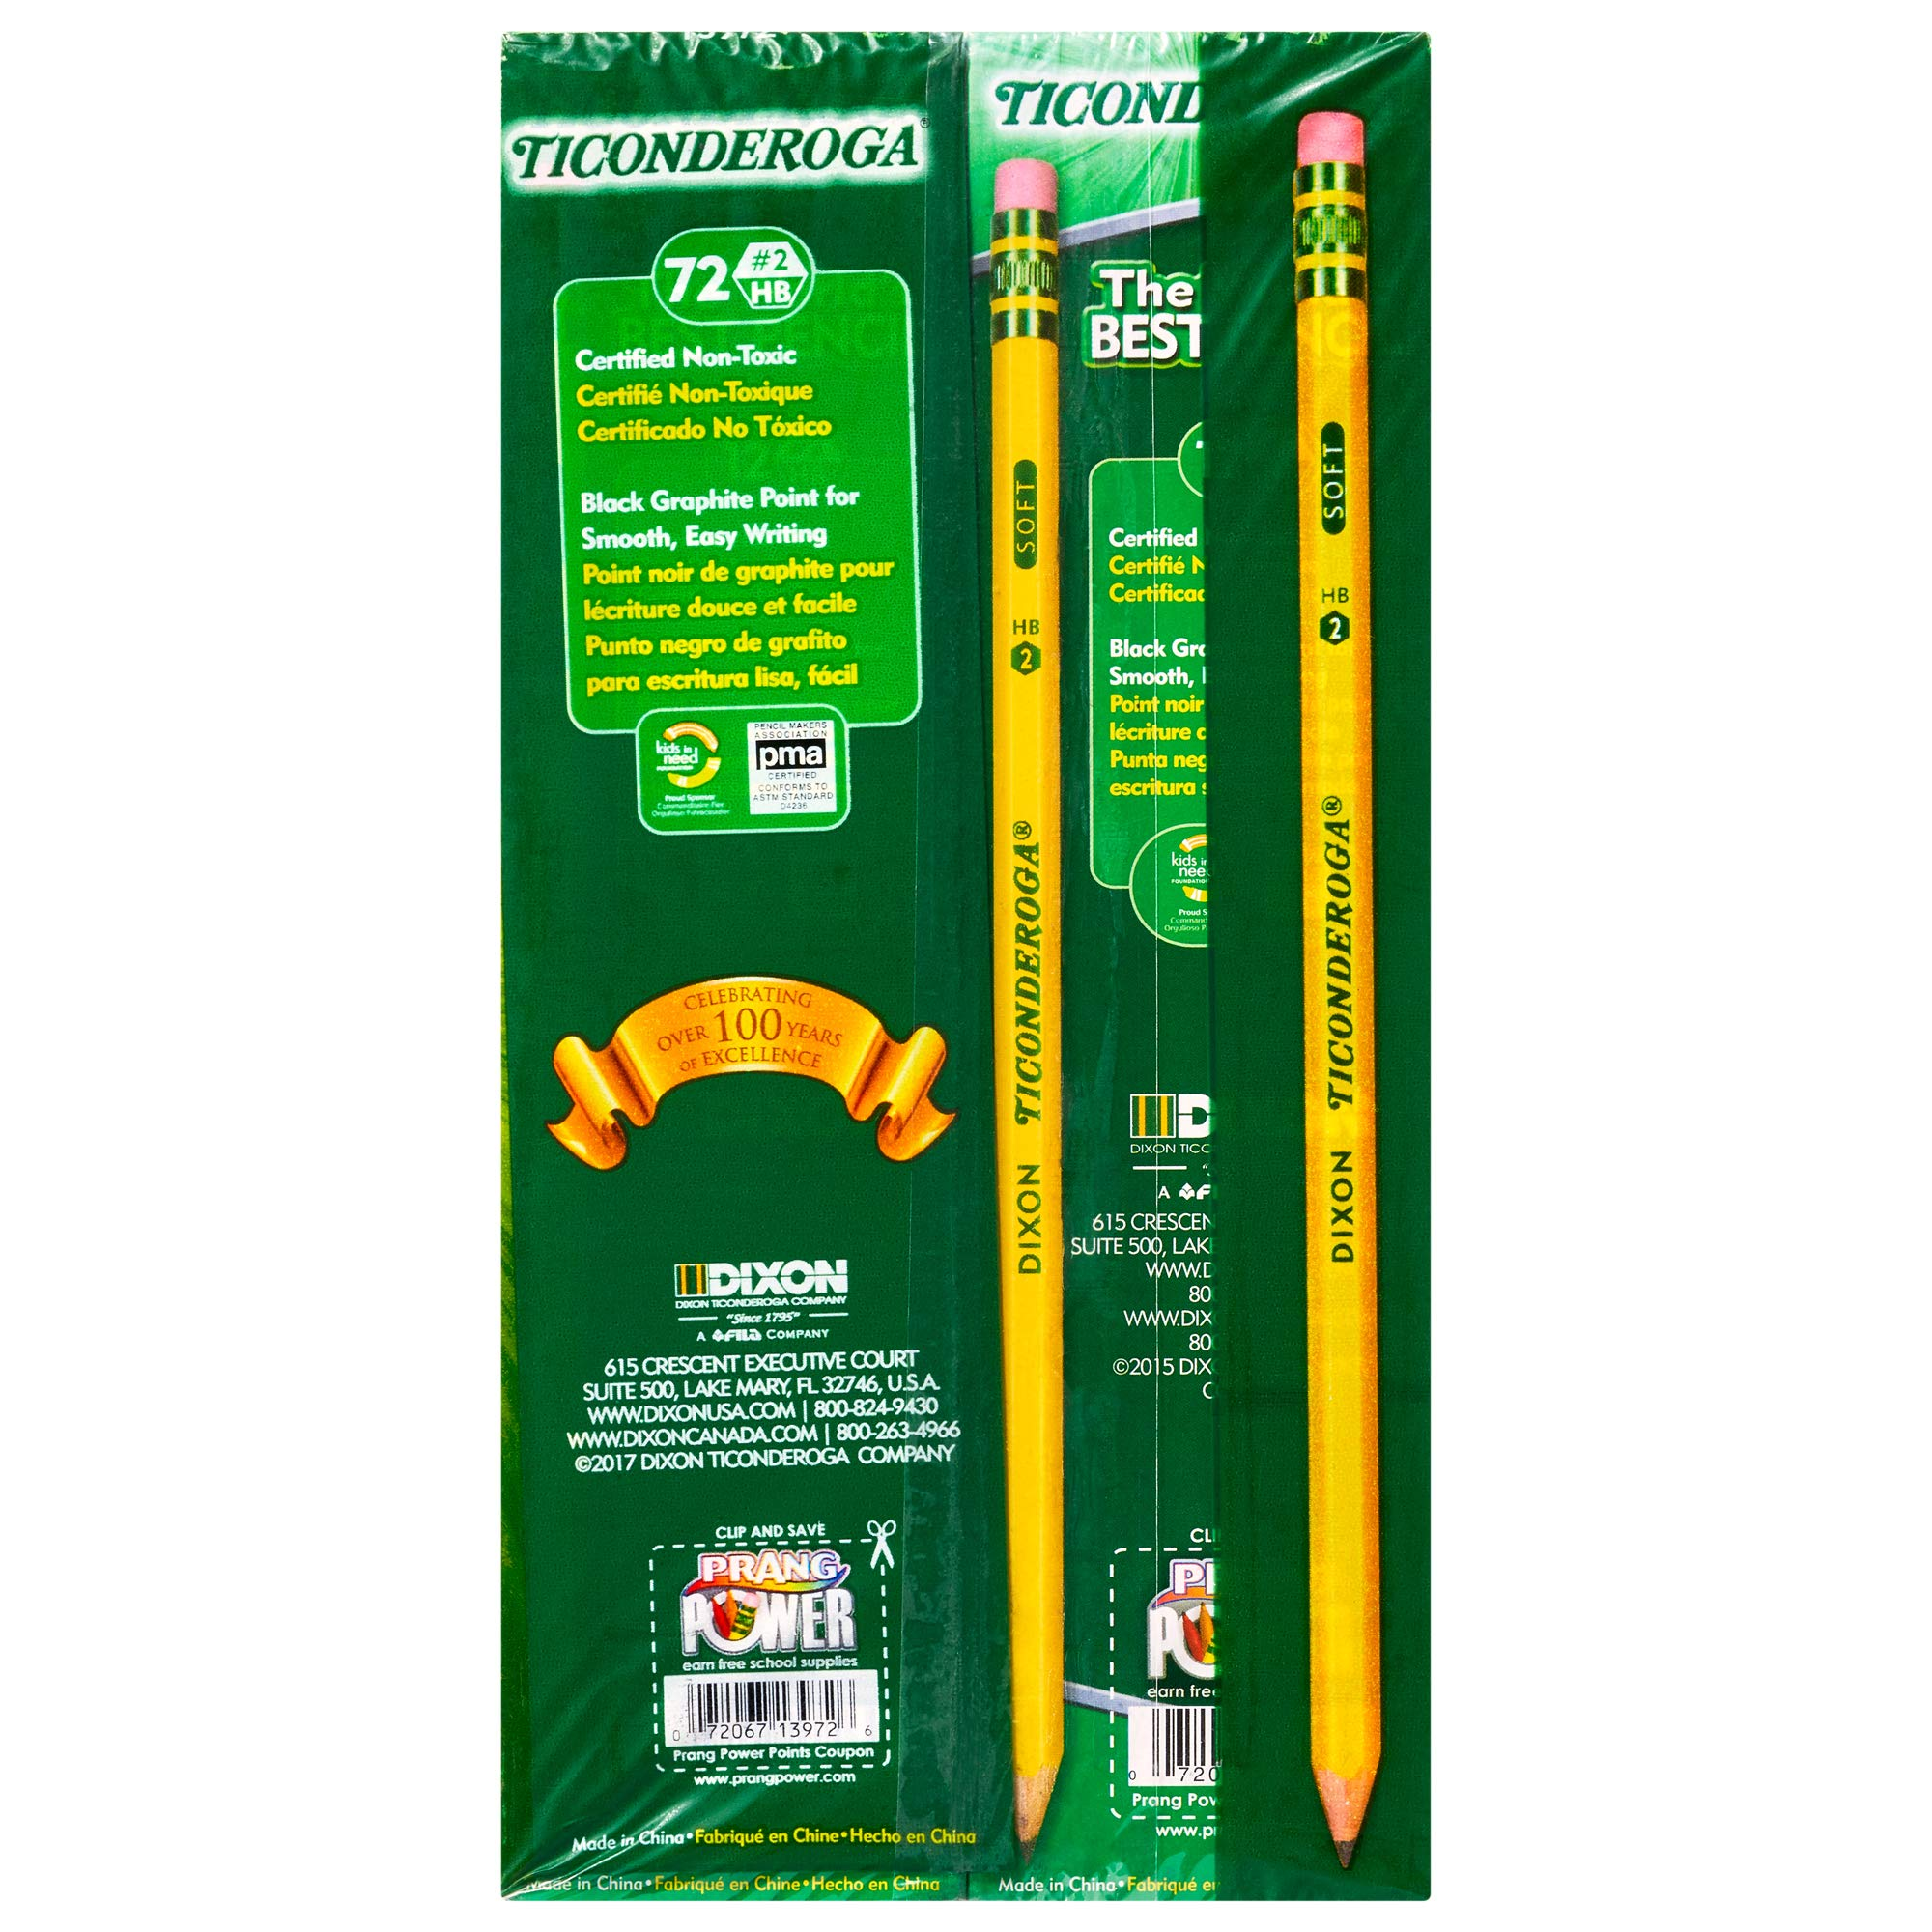 TICONDEROGA Pencils, Wood-Cased #2 HB Soft, Pre-Sharpened with Eraser, Yellow, 72-Pack (13972) by Ticonderoga (Image #3)